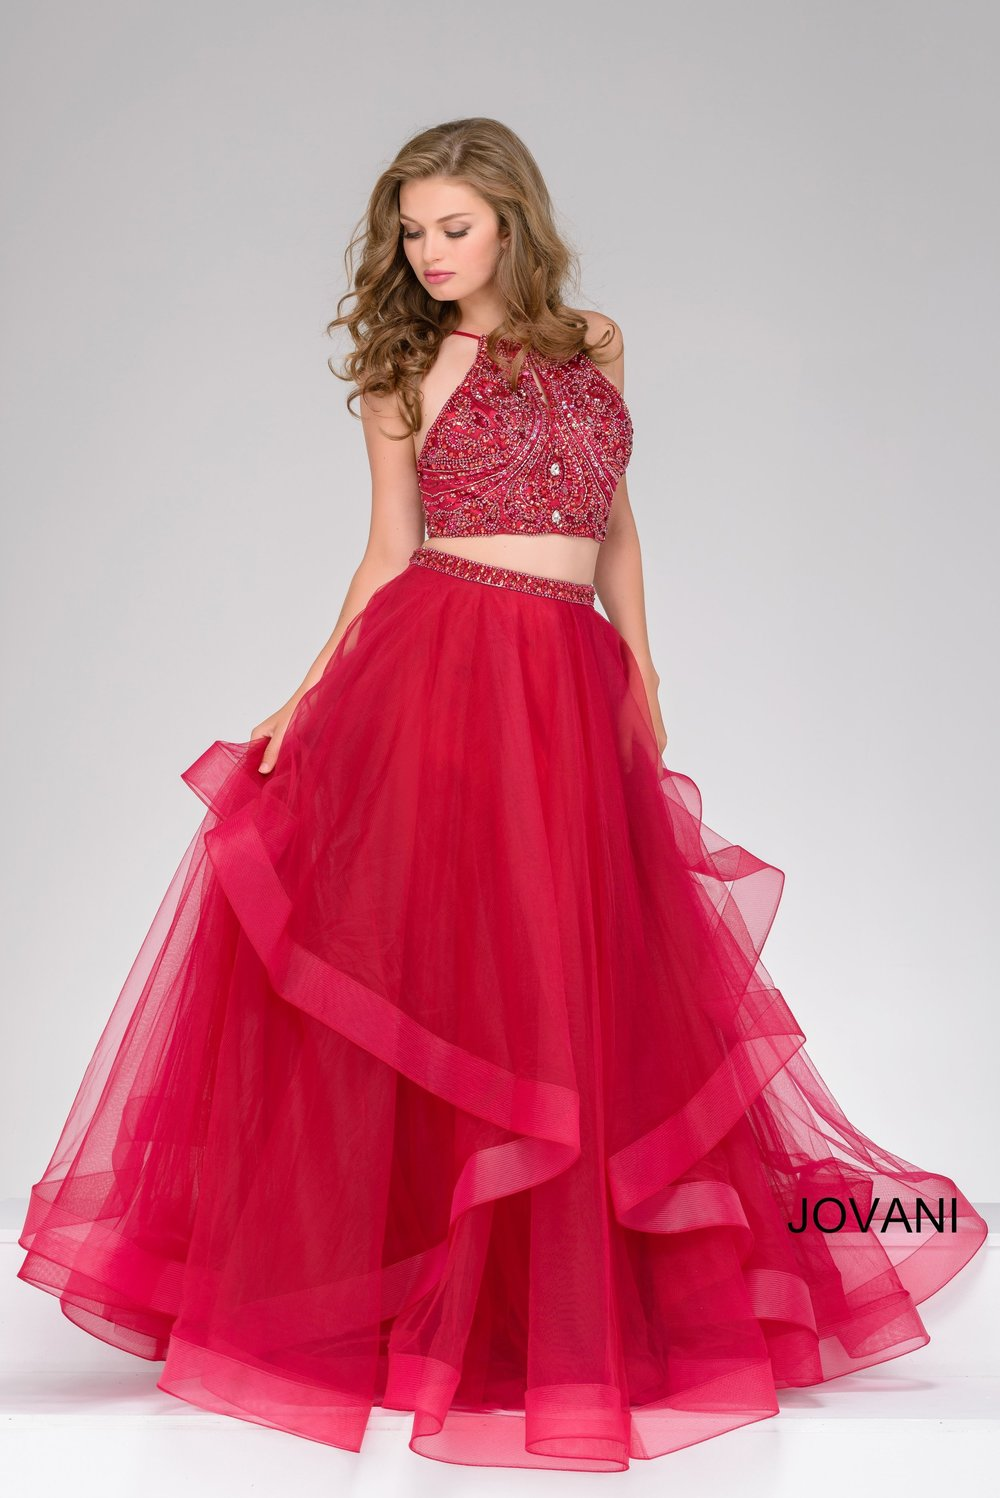 Jovani - Our amazing selection of Jovani prom and formal dresses will stun you. From bold, bright colors to sophisticated black and whites, we have the absolute perfect dress for you.